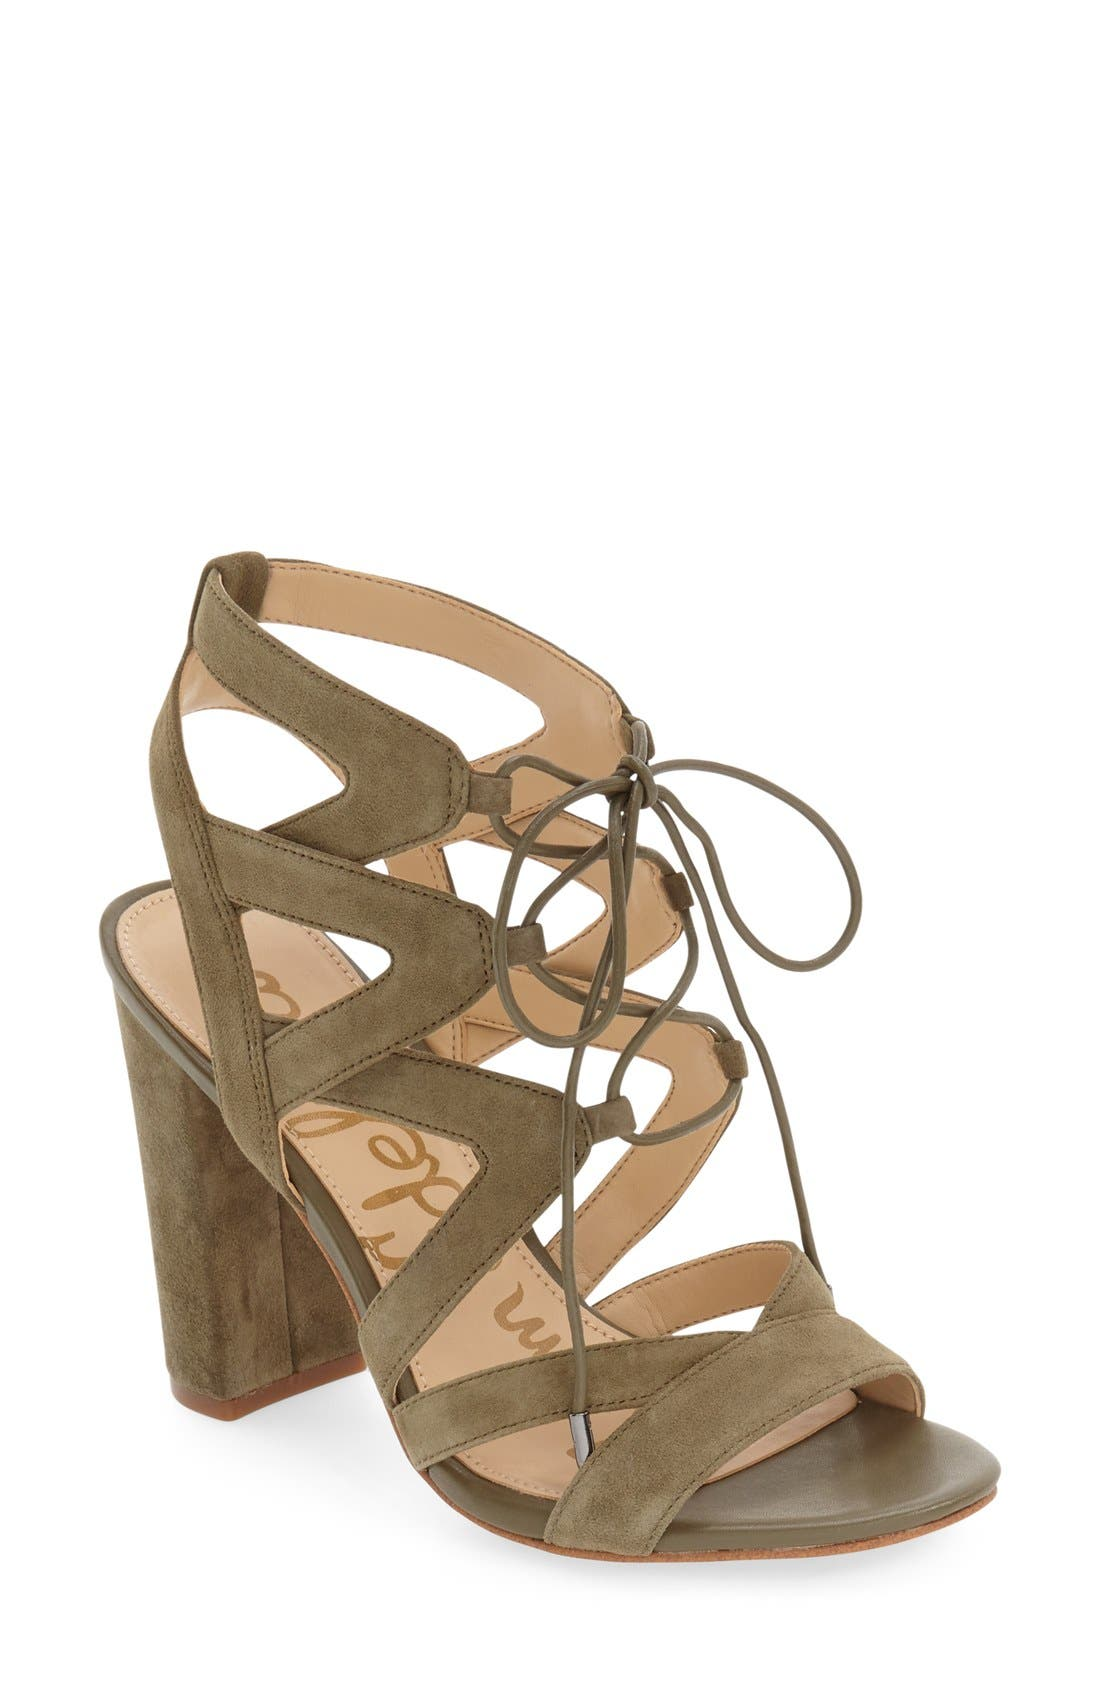 'Yardley' Lace-Up Sandal,                         Main,                         color, Moss Green Suede Leather